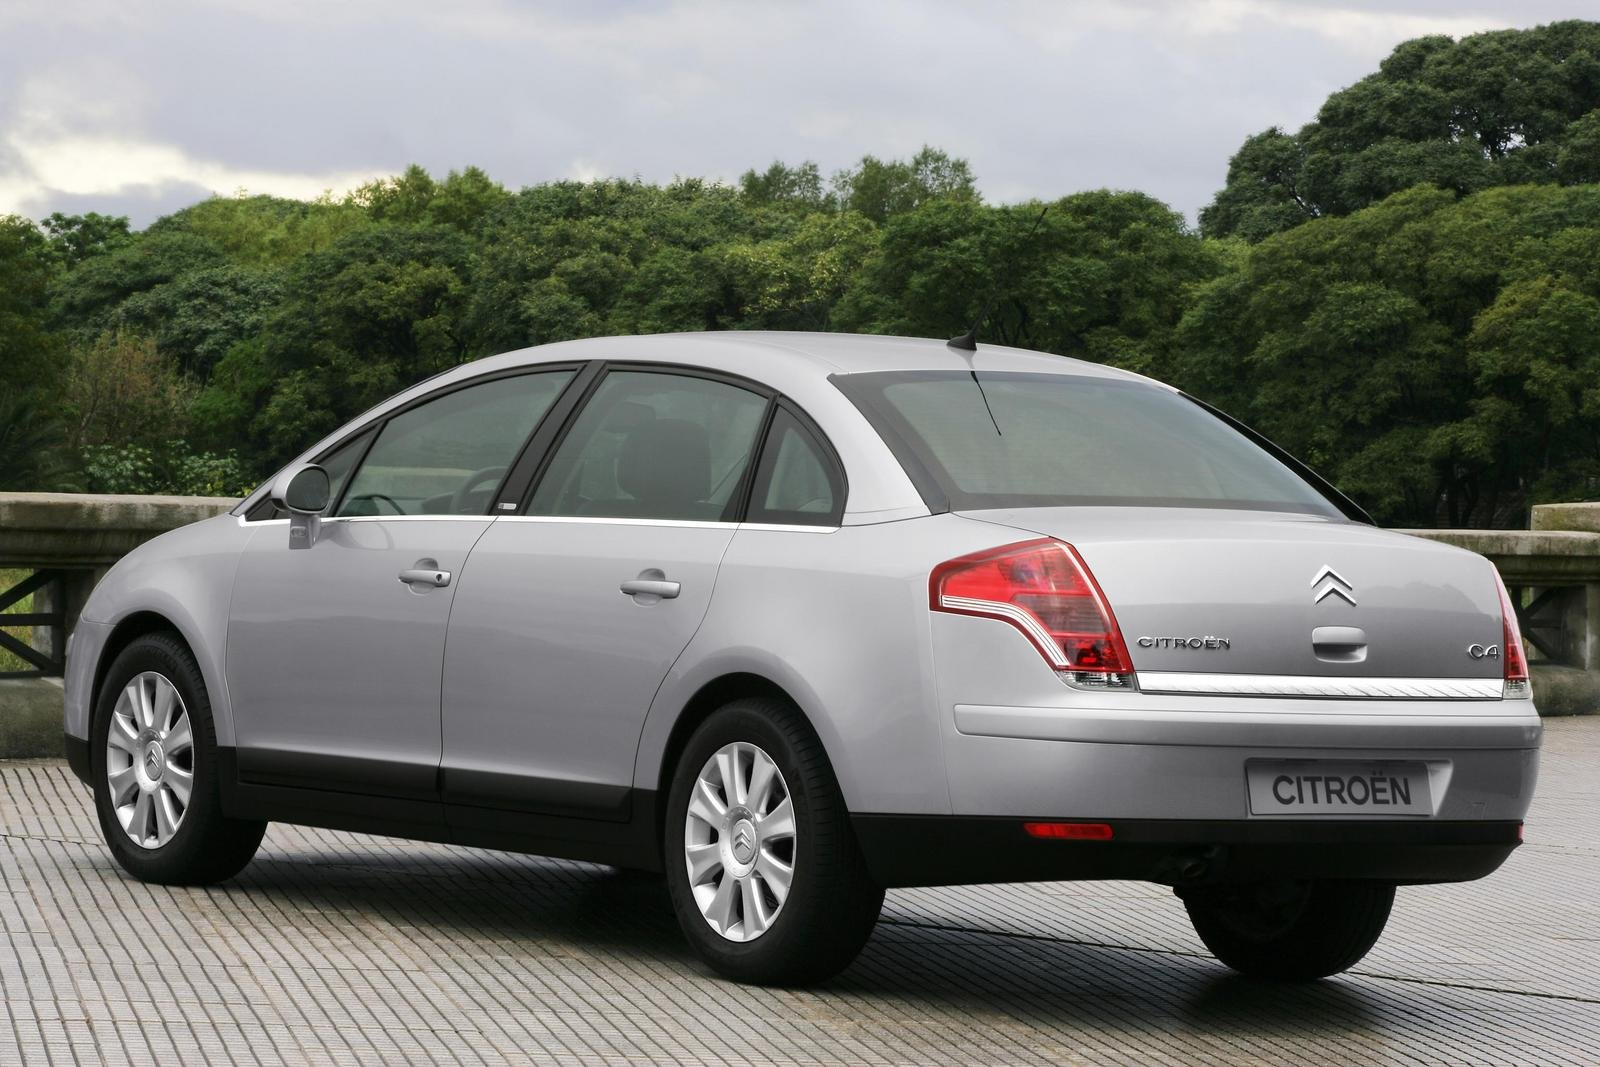 2007 citroen c4 sedan picture 175949 car review top speed. Black Bedroom Furniture Sets. Home Design Ideas